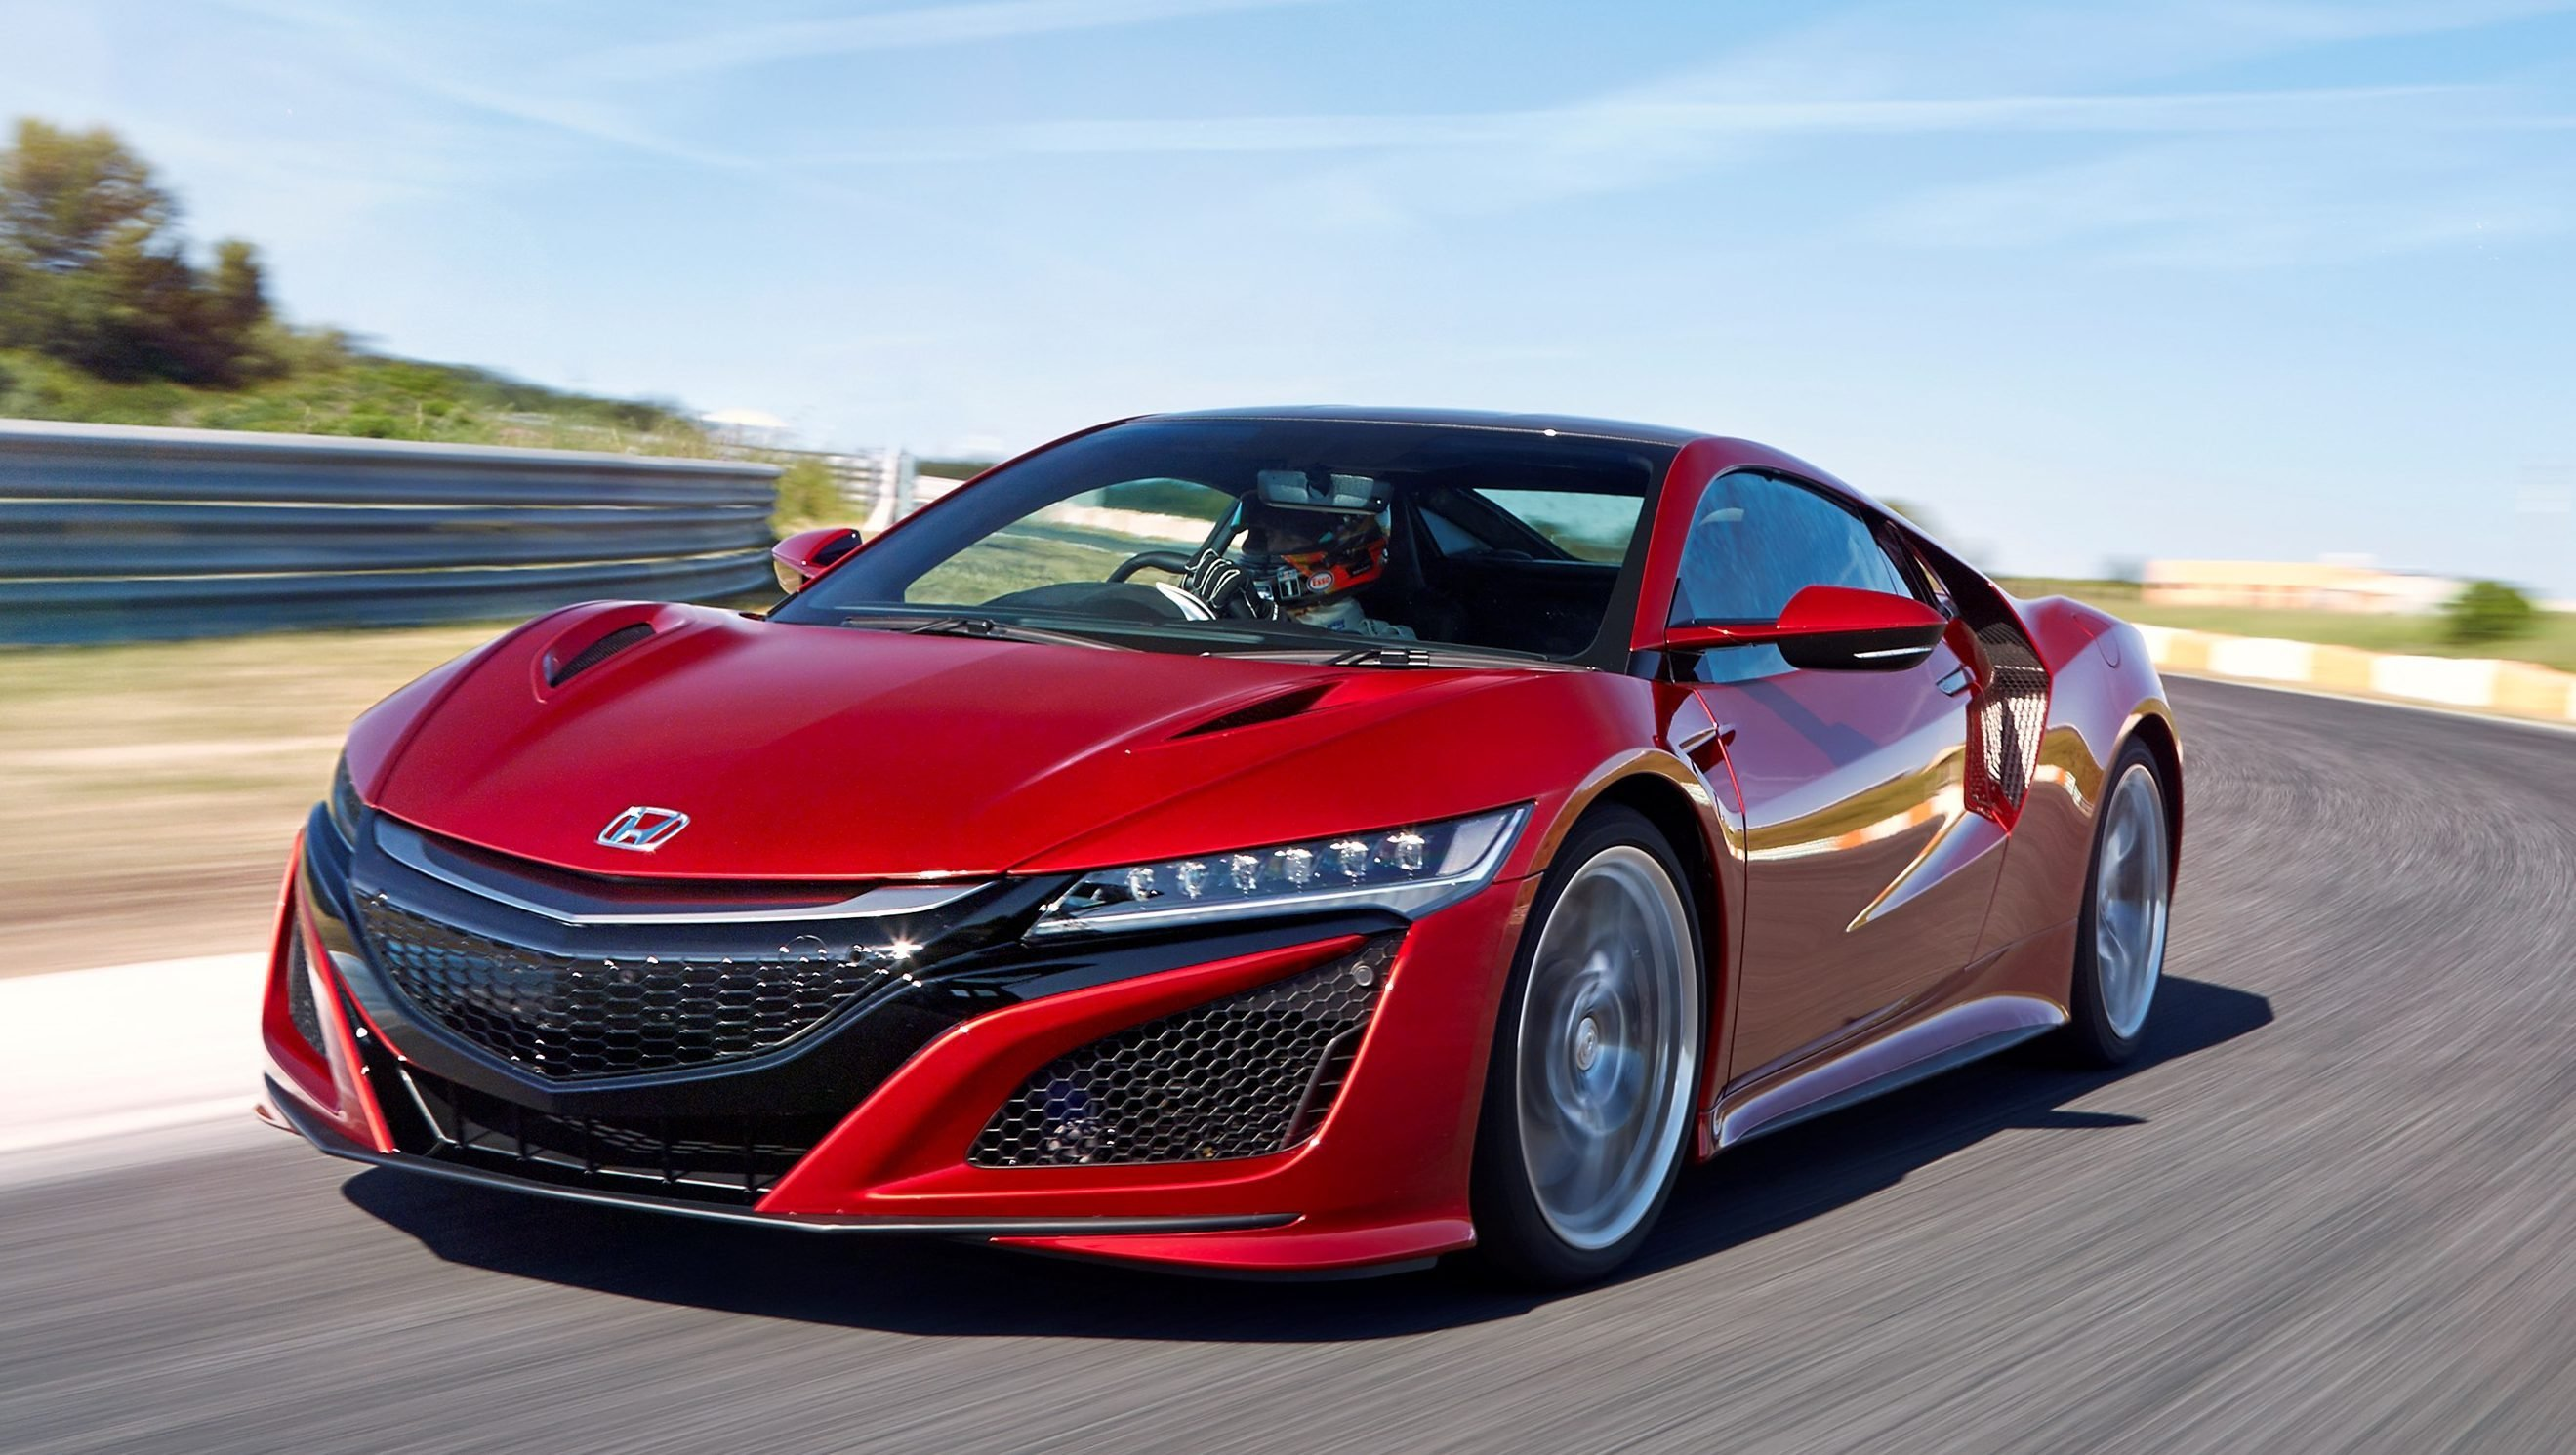 New Honda Nsx Singapore Price Confirmed Rm2 67 Mil On This Month